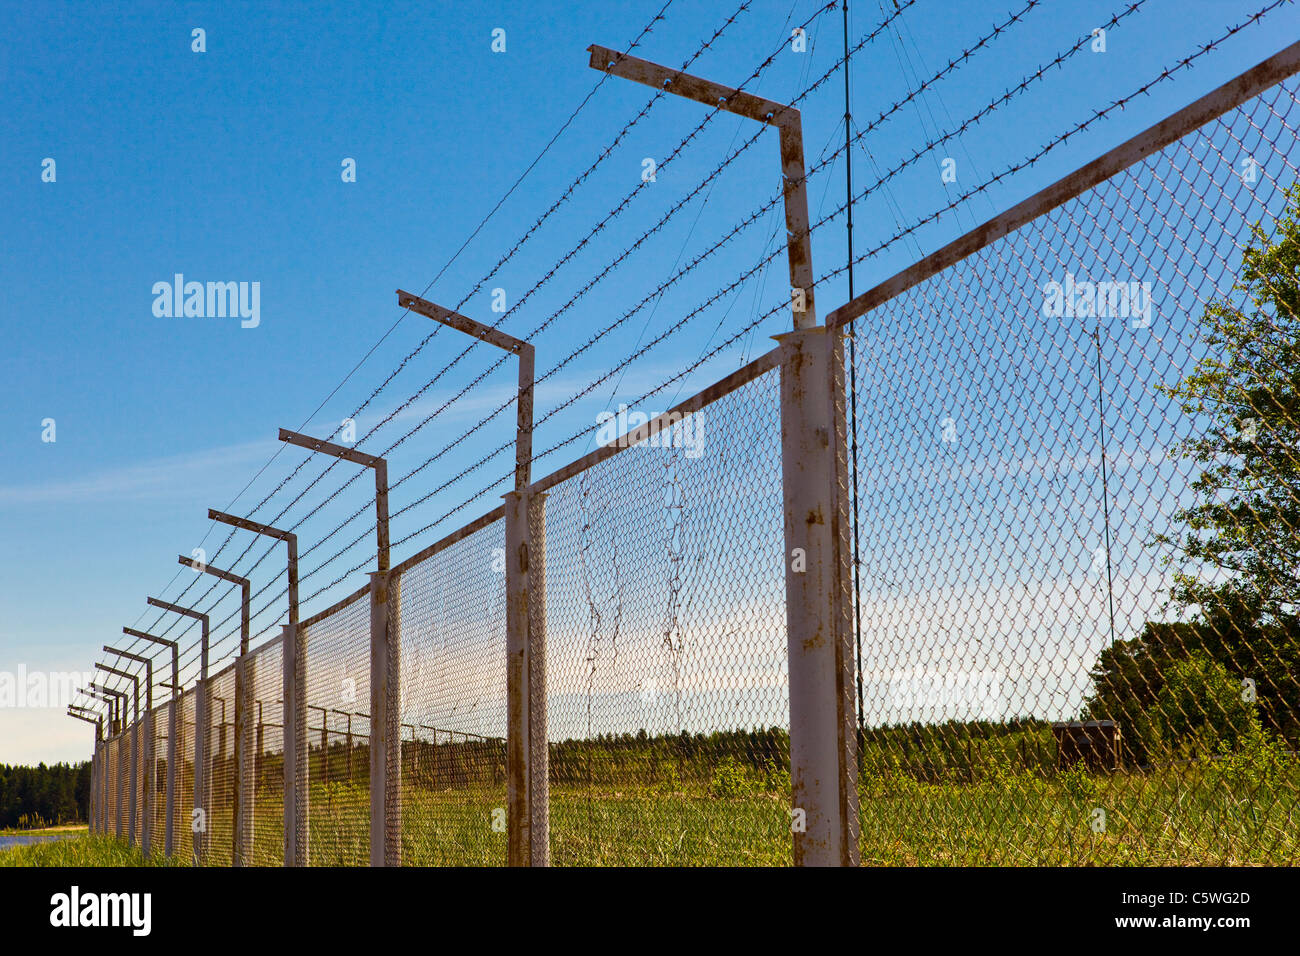 Barbed Wire Fence Top Wall Stock Photos & Barbed Wire Fence Top Wall ...